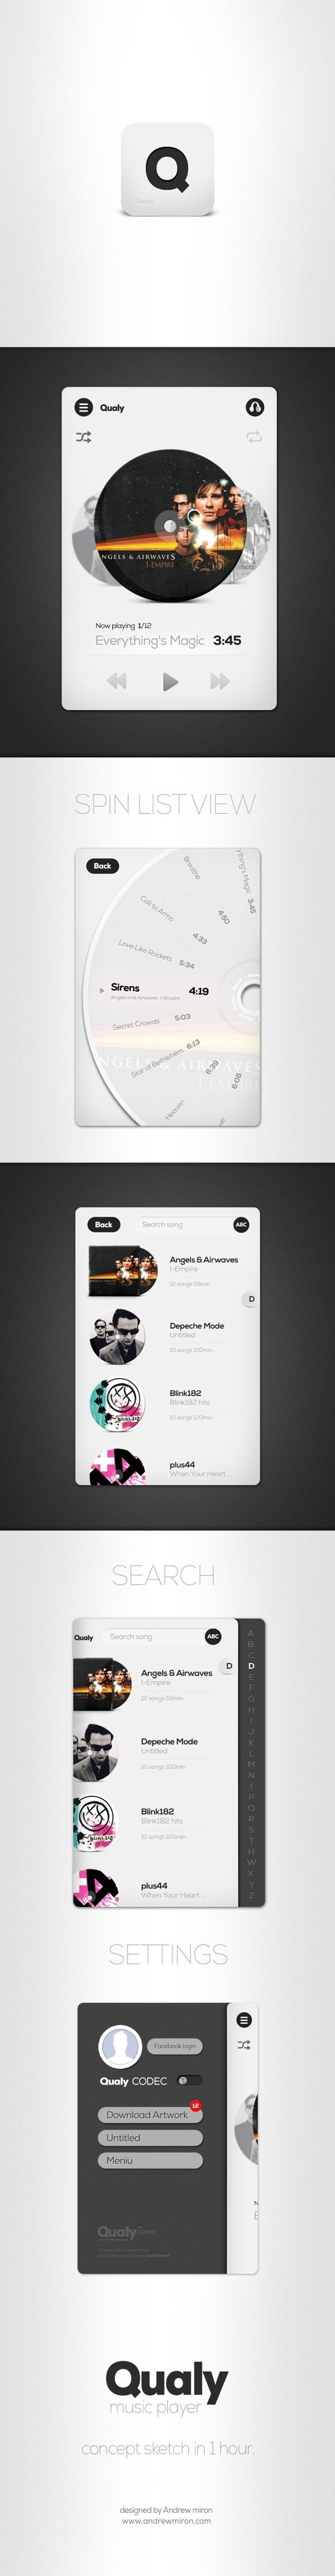 Qualy app. by Andrew Miron, via Behance #apple #ui